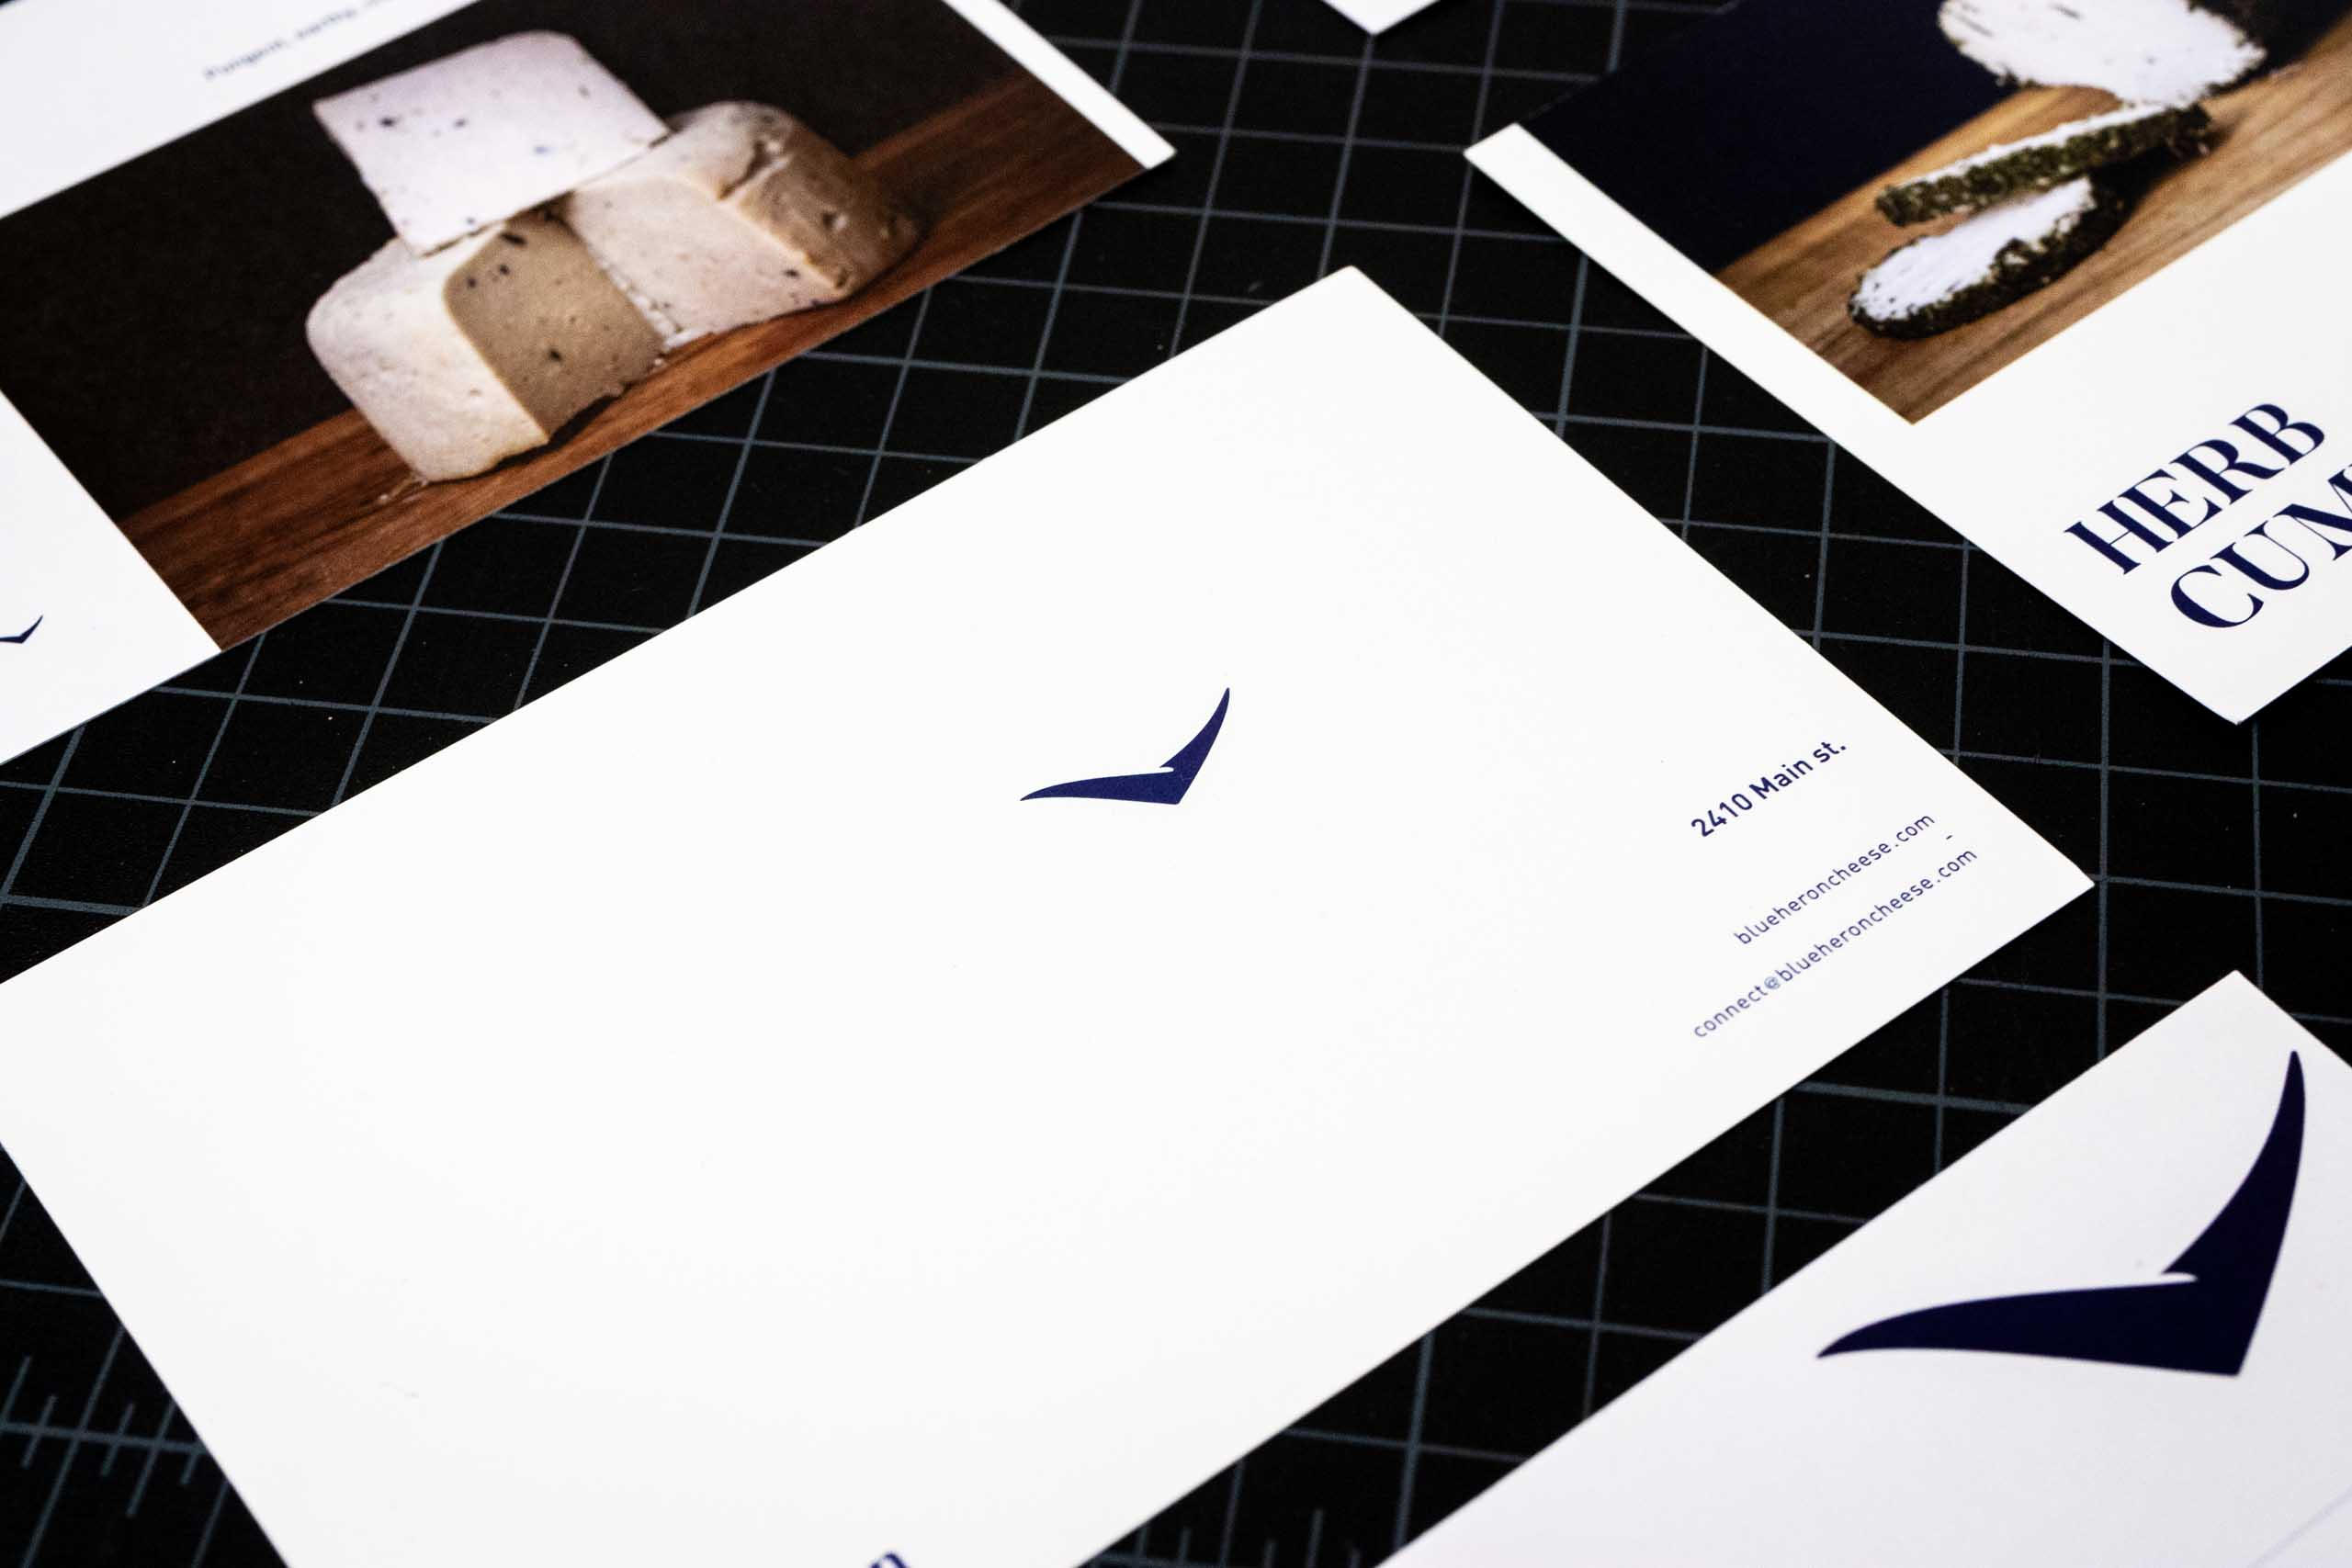 Postcard featuring a small Blue Heron logo, address and contact information — by Yagnyuk.